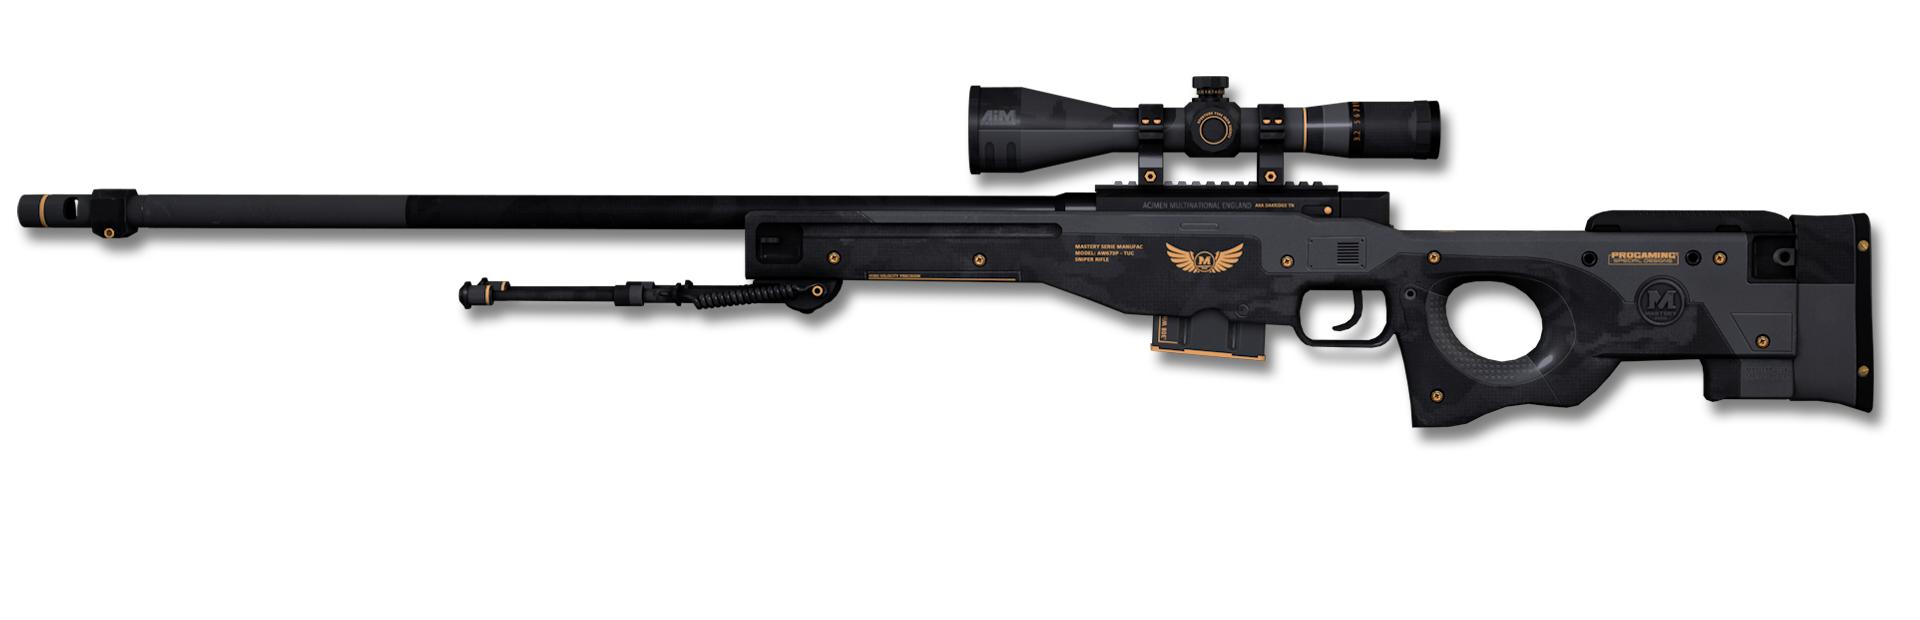 Awp medusa png. Steam workshop m a